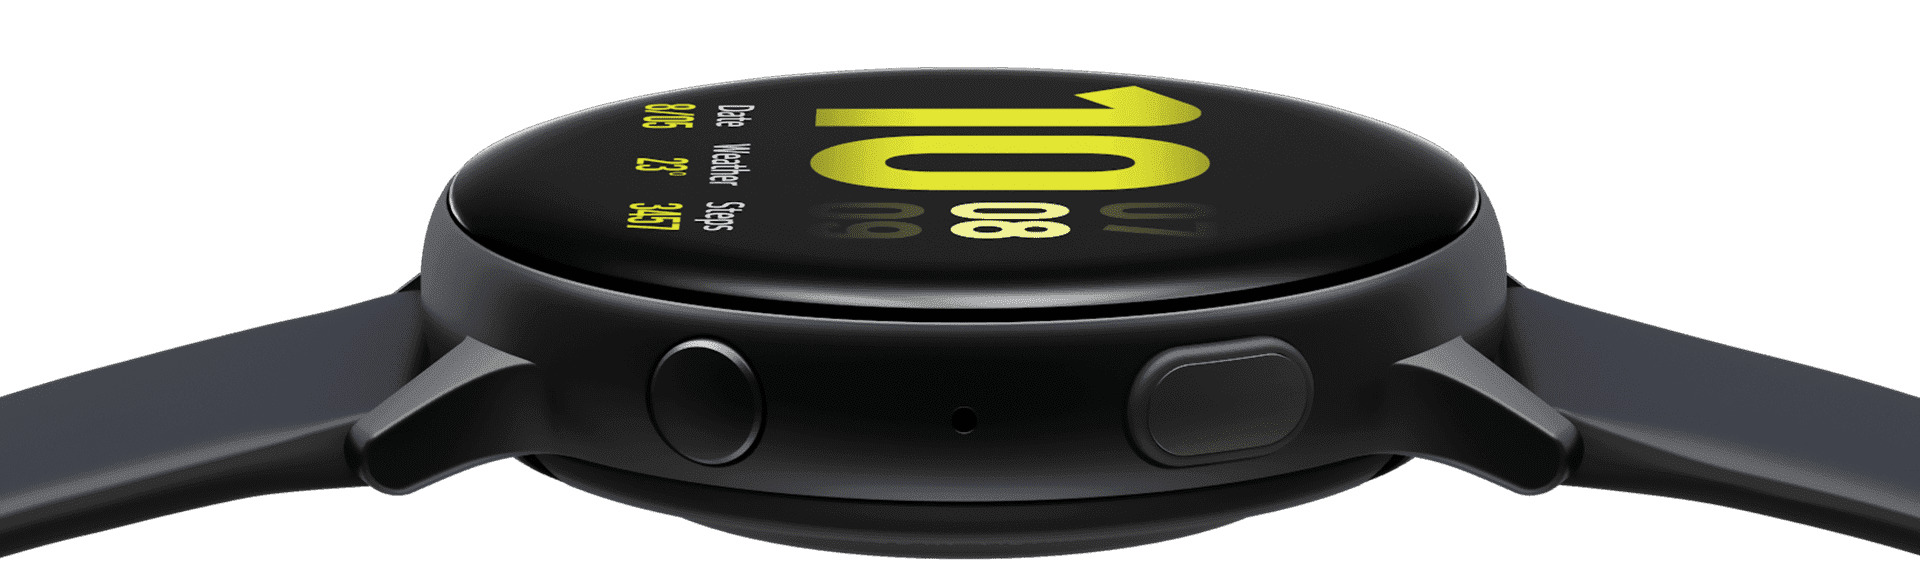 A Galaxy Watch active2 that rotates to display the rear side of the watch, the side view with the two buttons in the foreground, and finally the front side which shows the watch face.